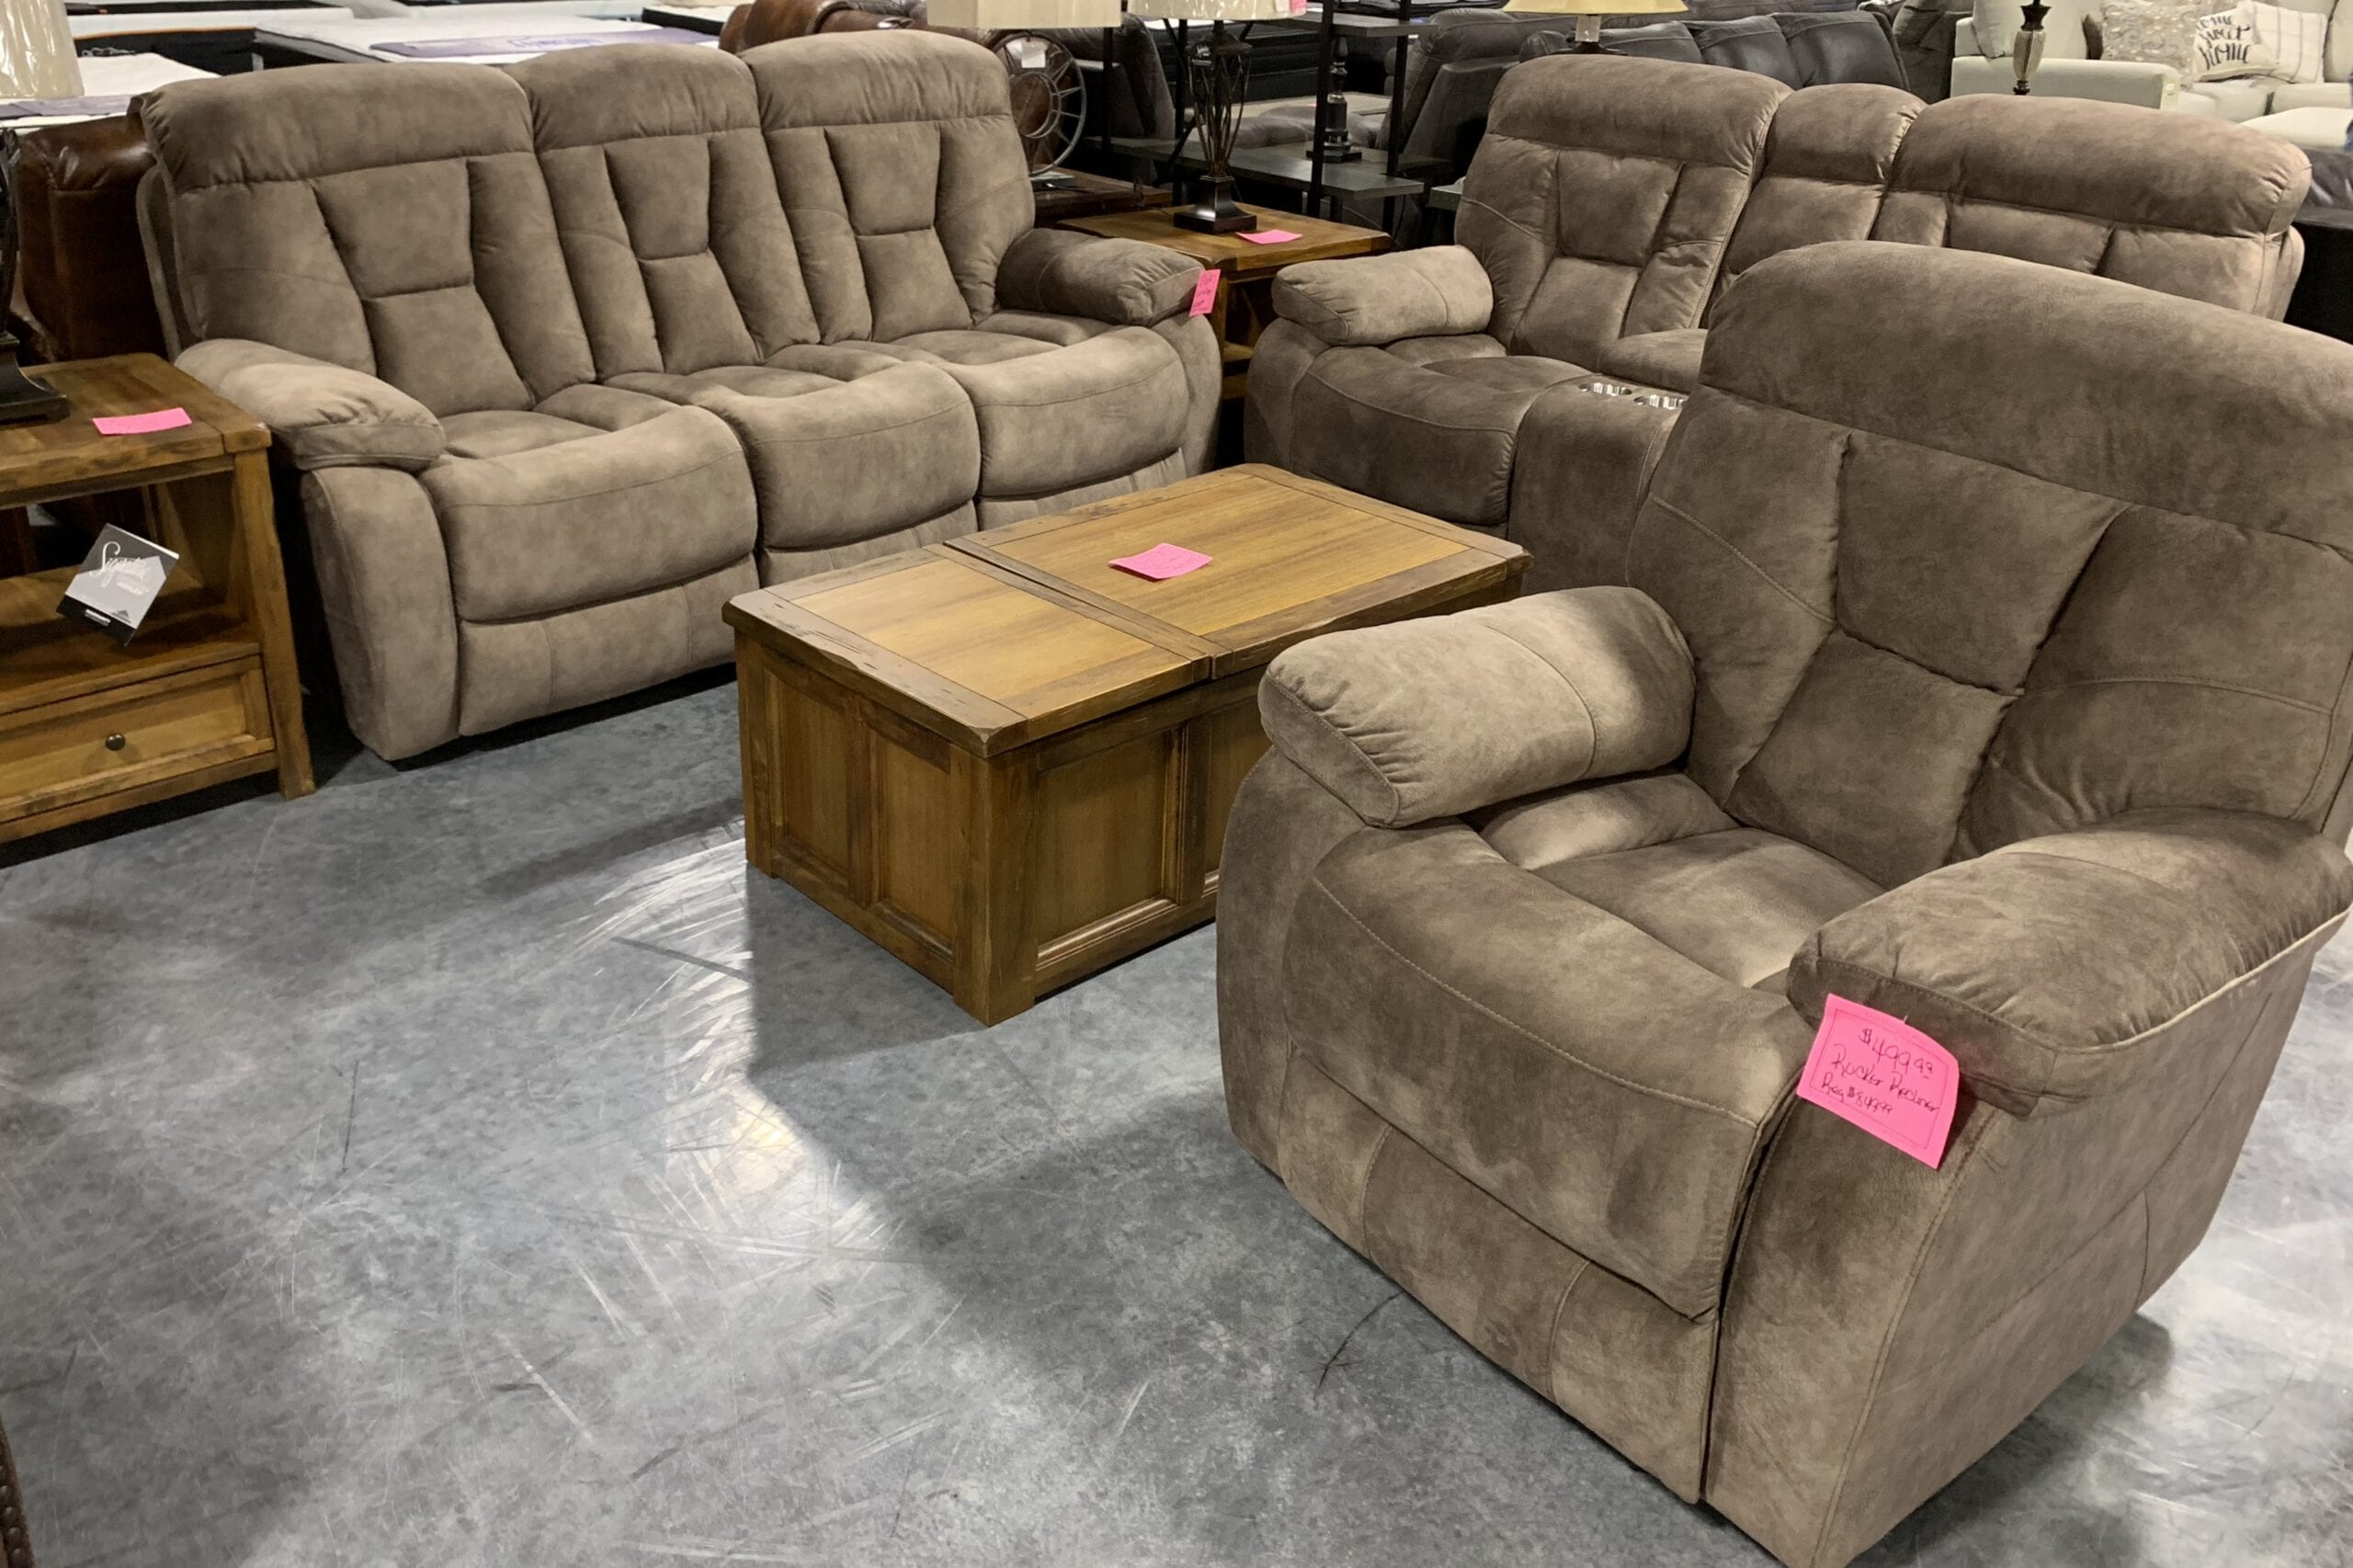 a 3pc. reclining living room set by Steve Silver